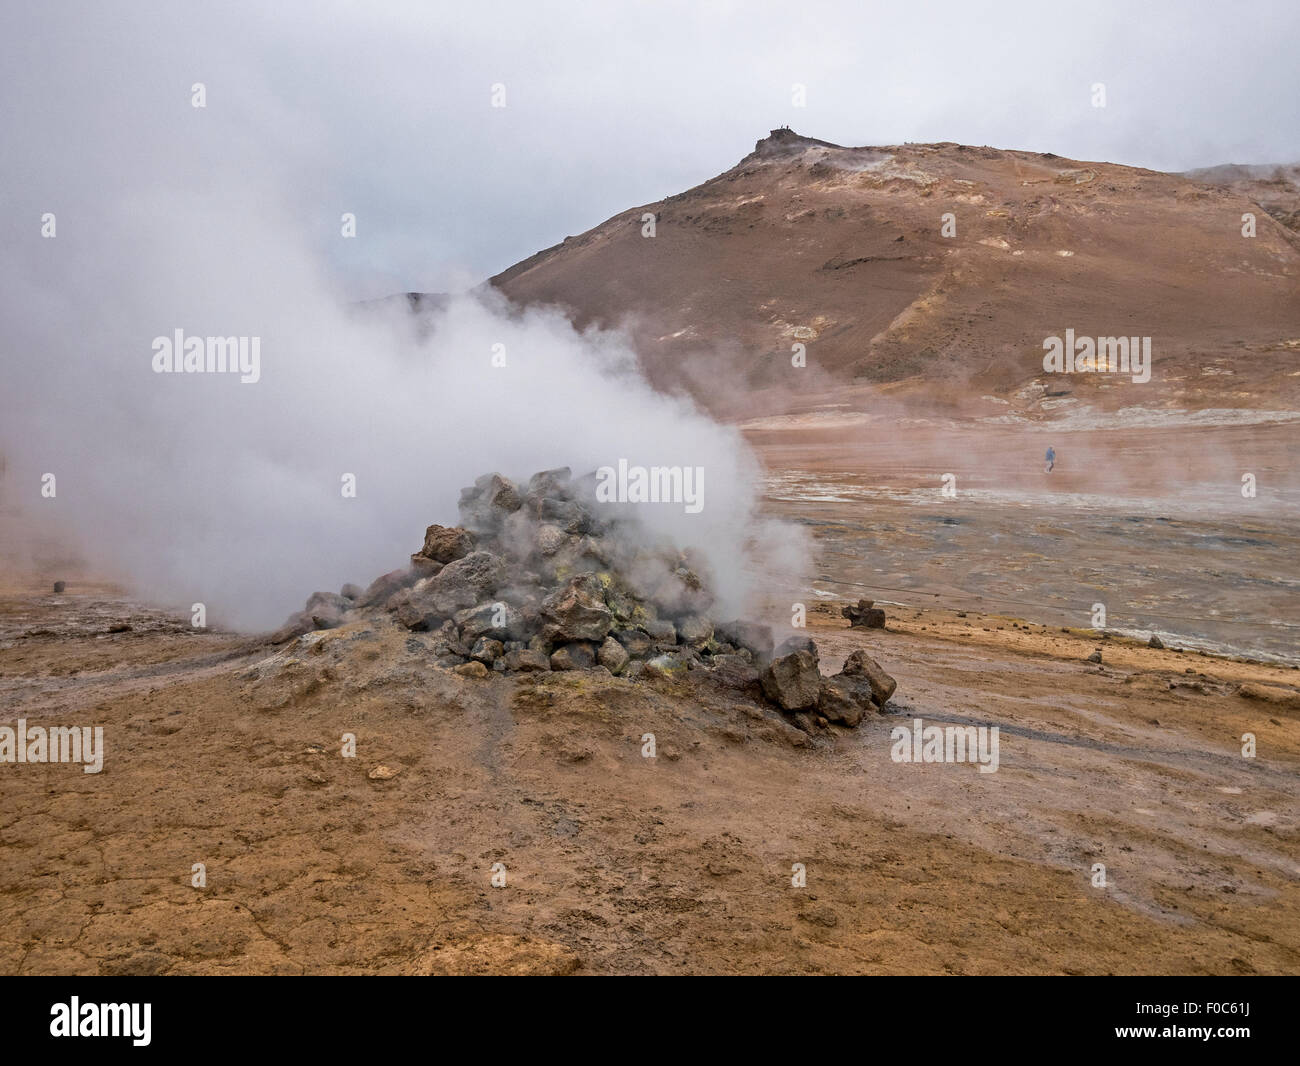 Namafjall high temperature geothermal area with fumaroles, mud pots and sulphur deposits Iceland. - Stock Image